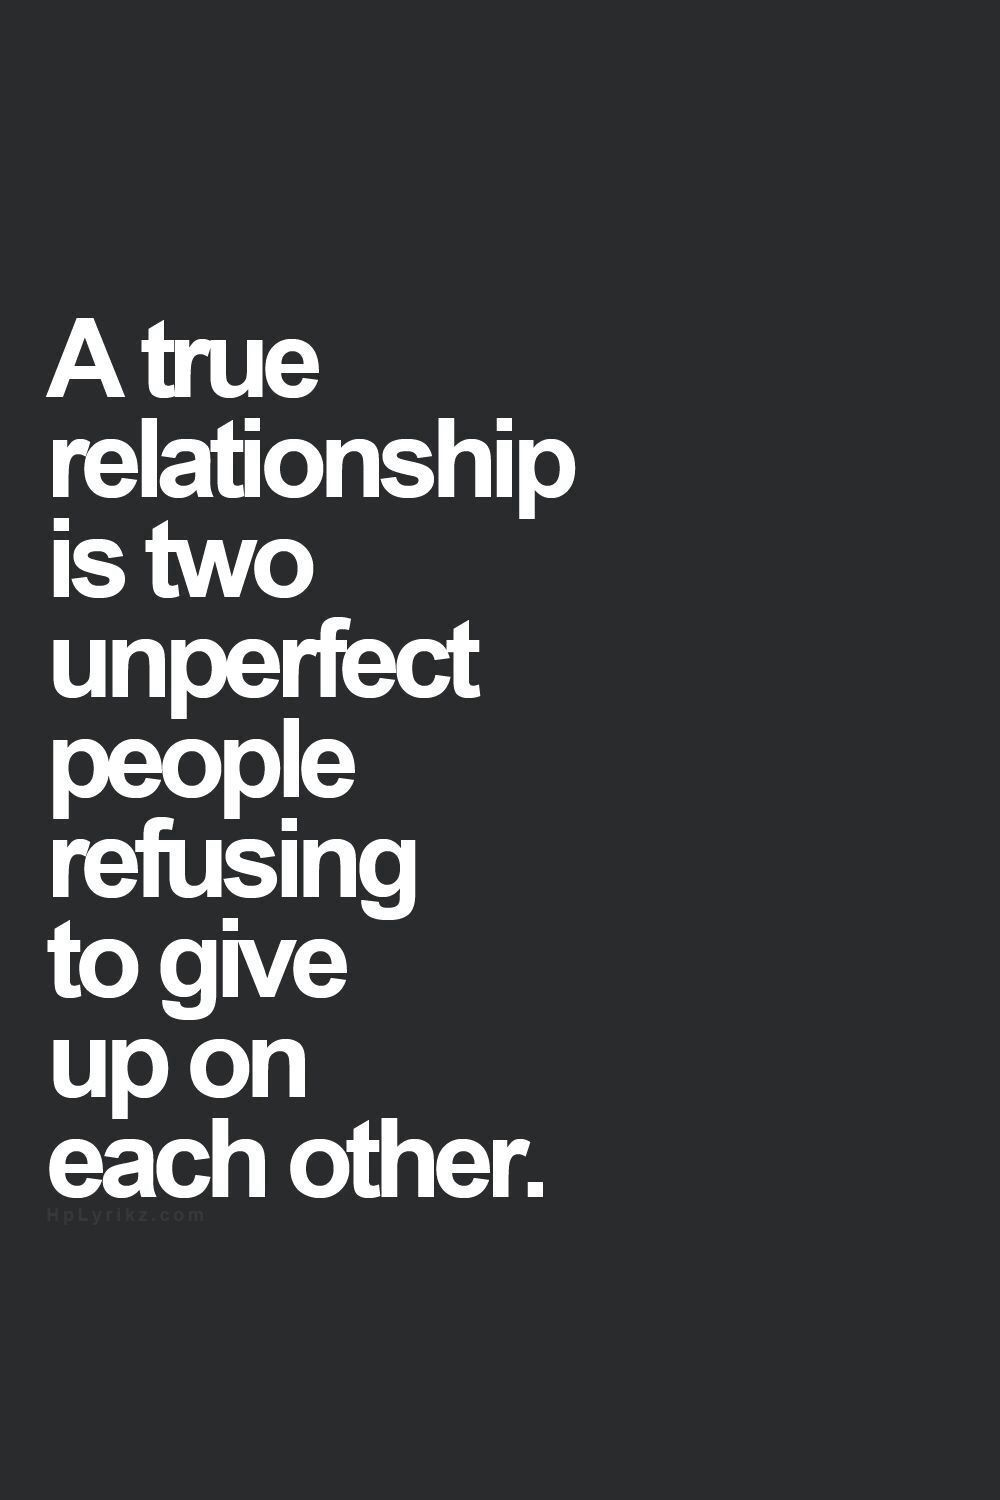 New Relationship Love Quotes: 26 Inspirational Love Quotes And Sayings For Her